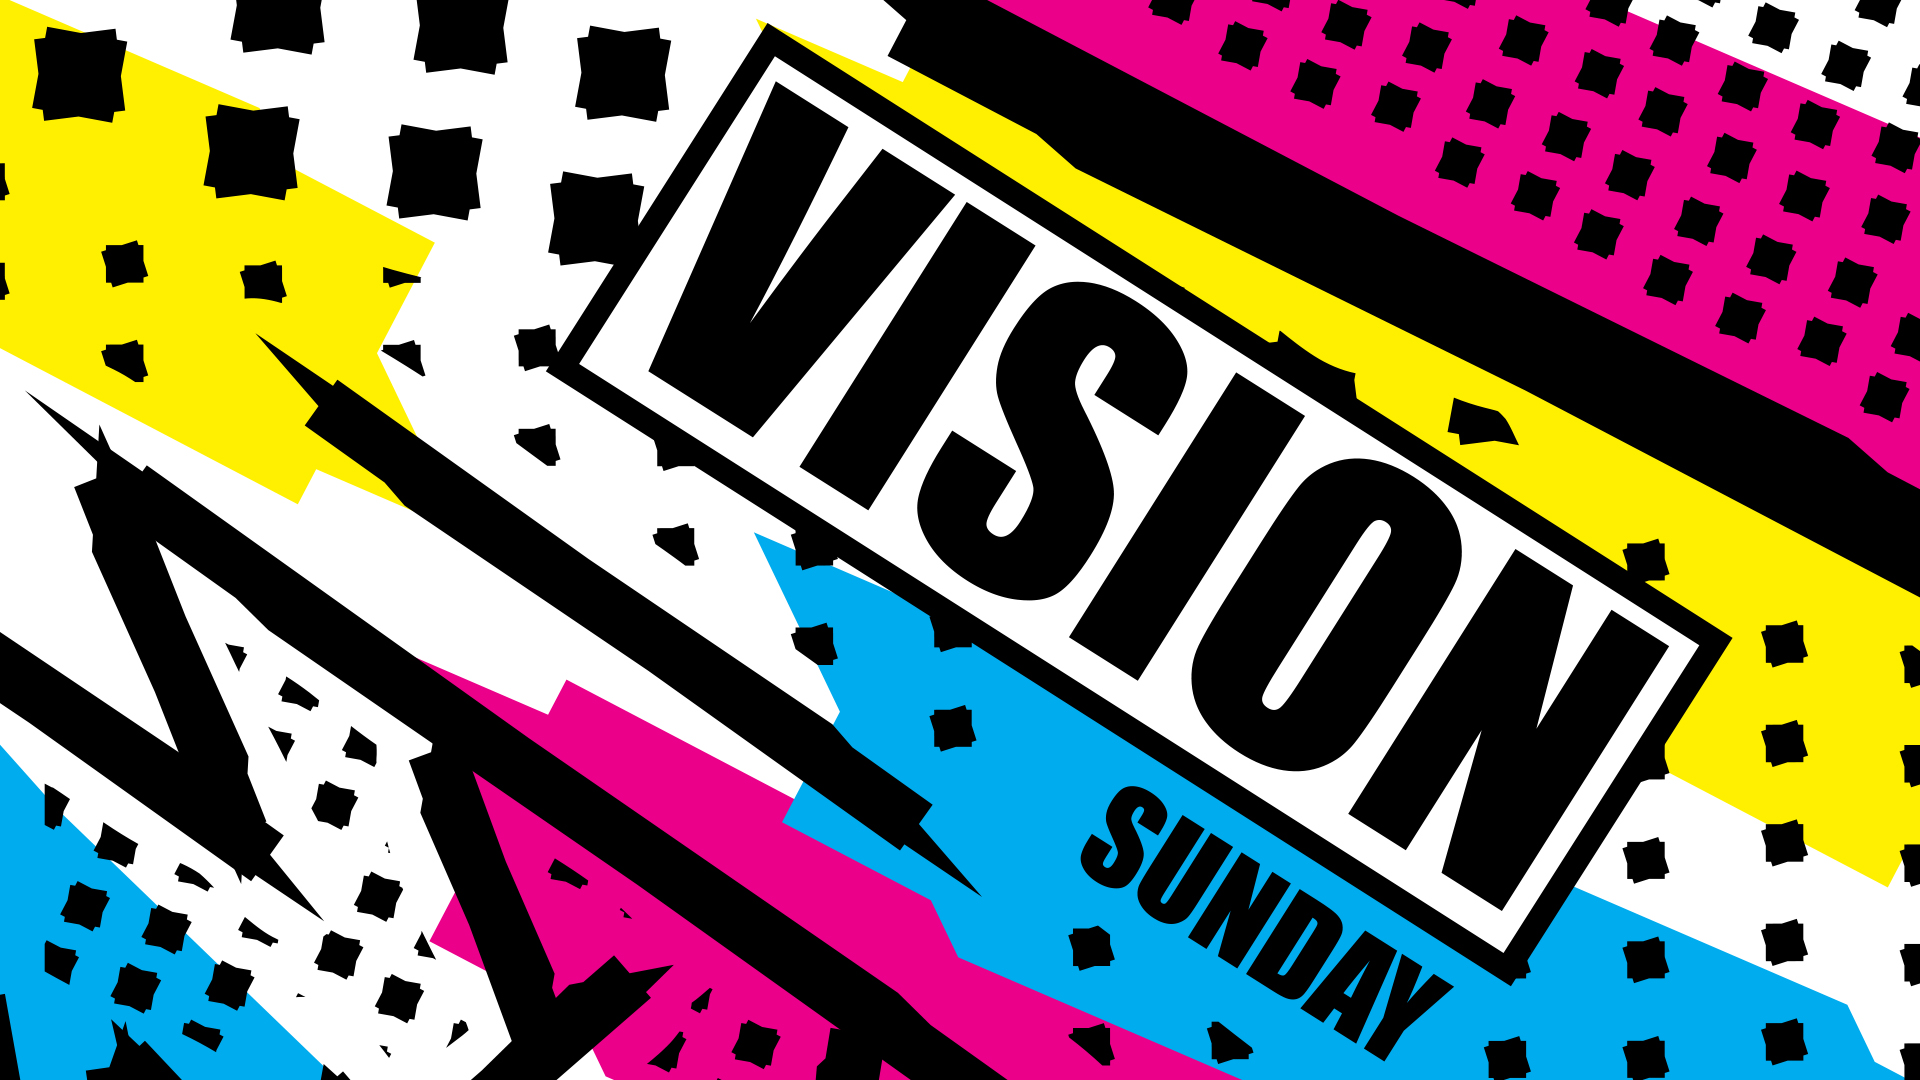 vision sunday full art.jpg